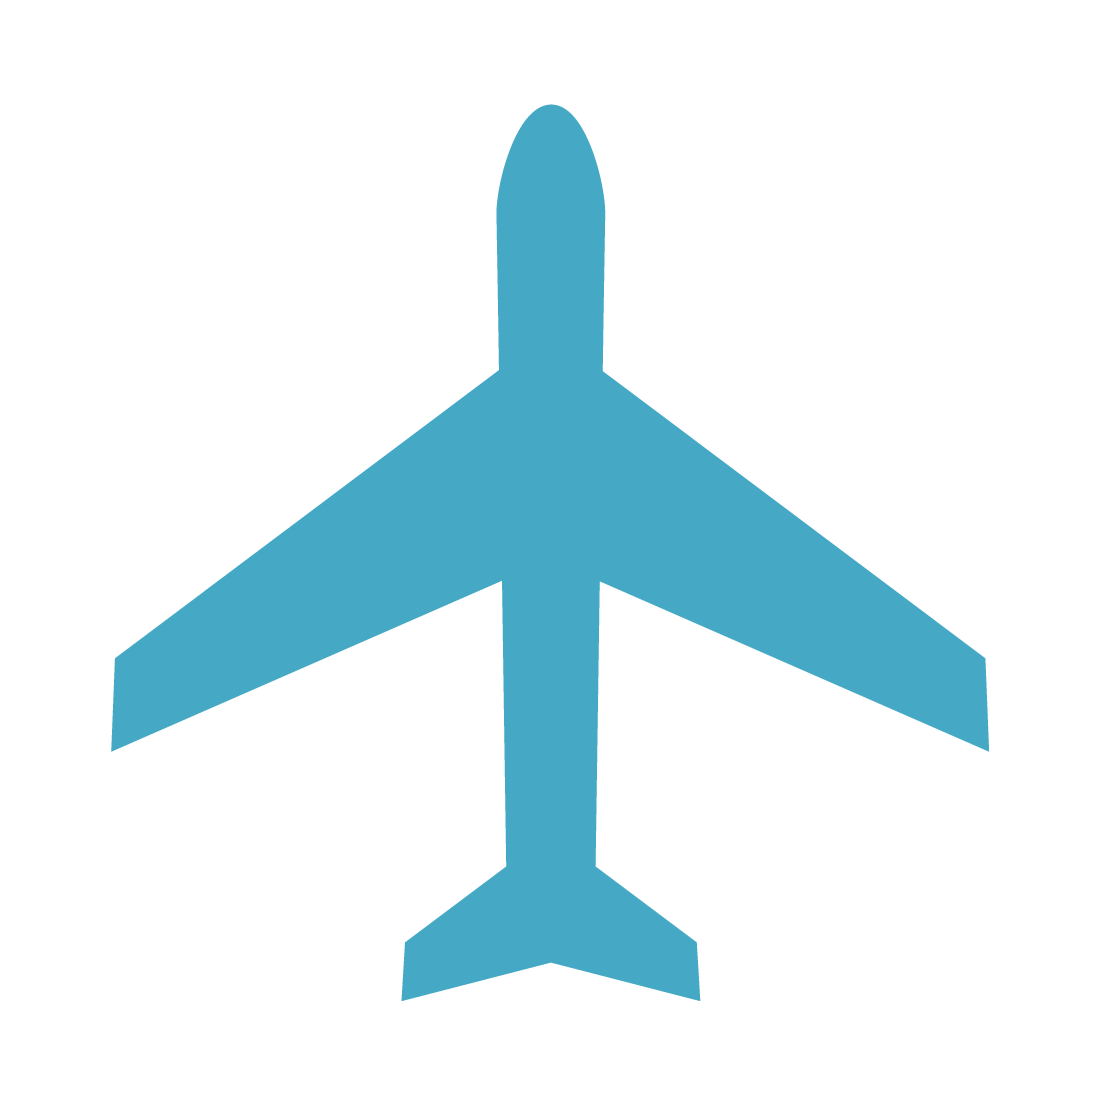 Social-Giphys_Airplane-Icon-Breeze.png